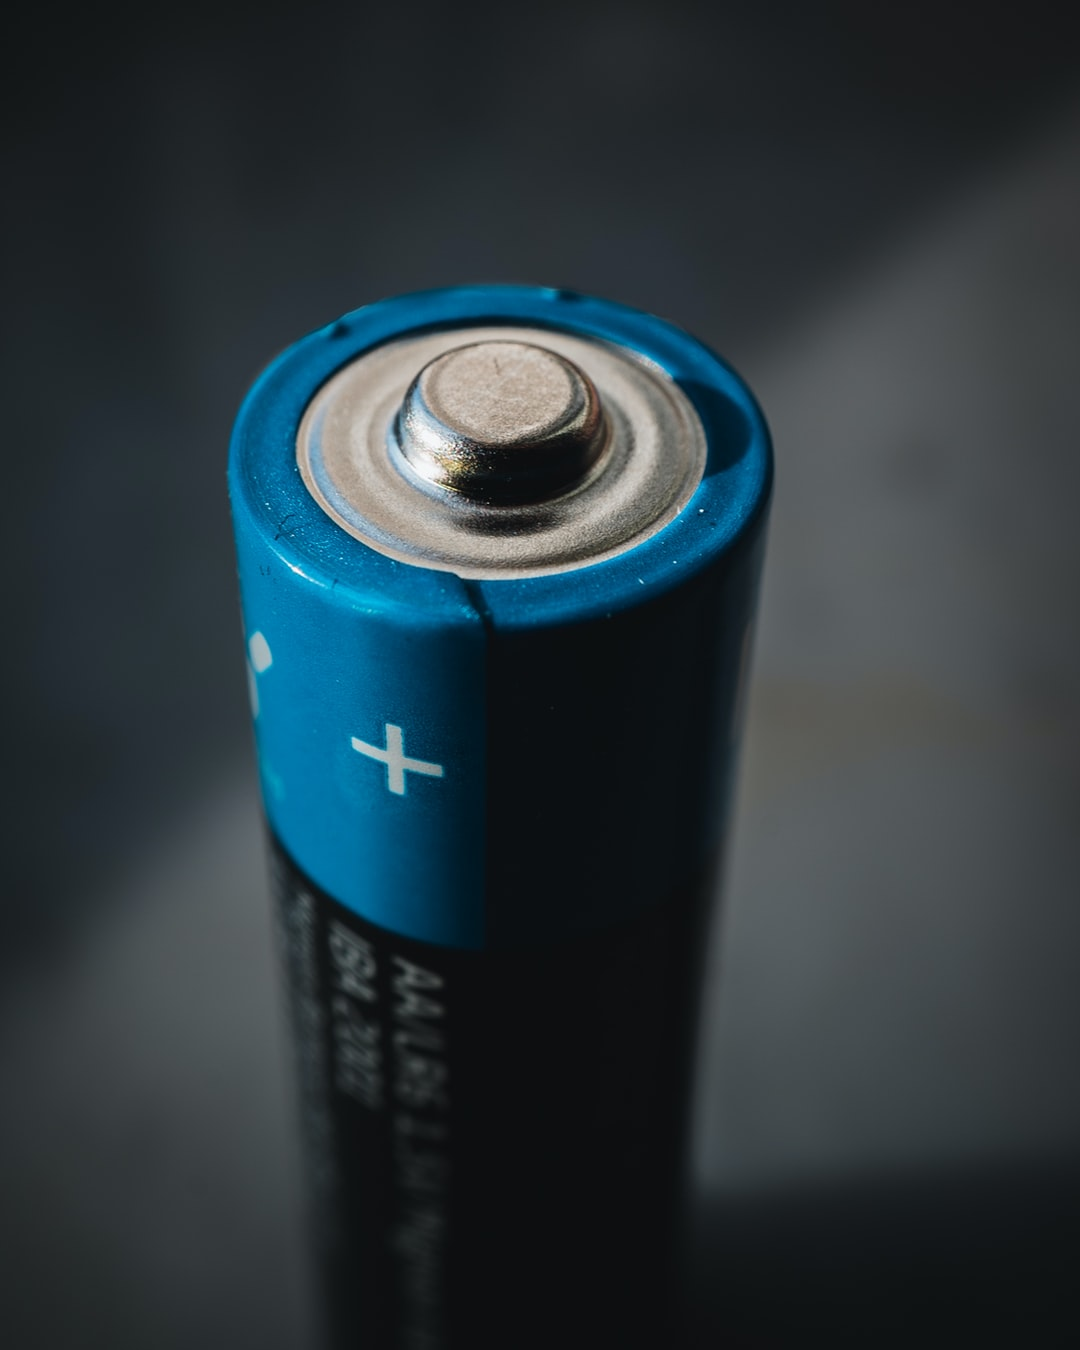 A macro shot of a normal AA type battery cell on the + / Cathode side.